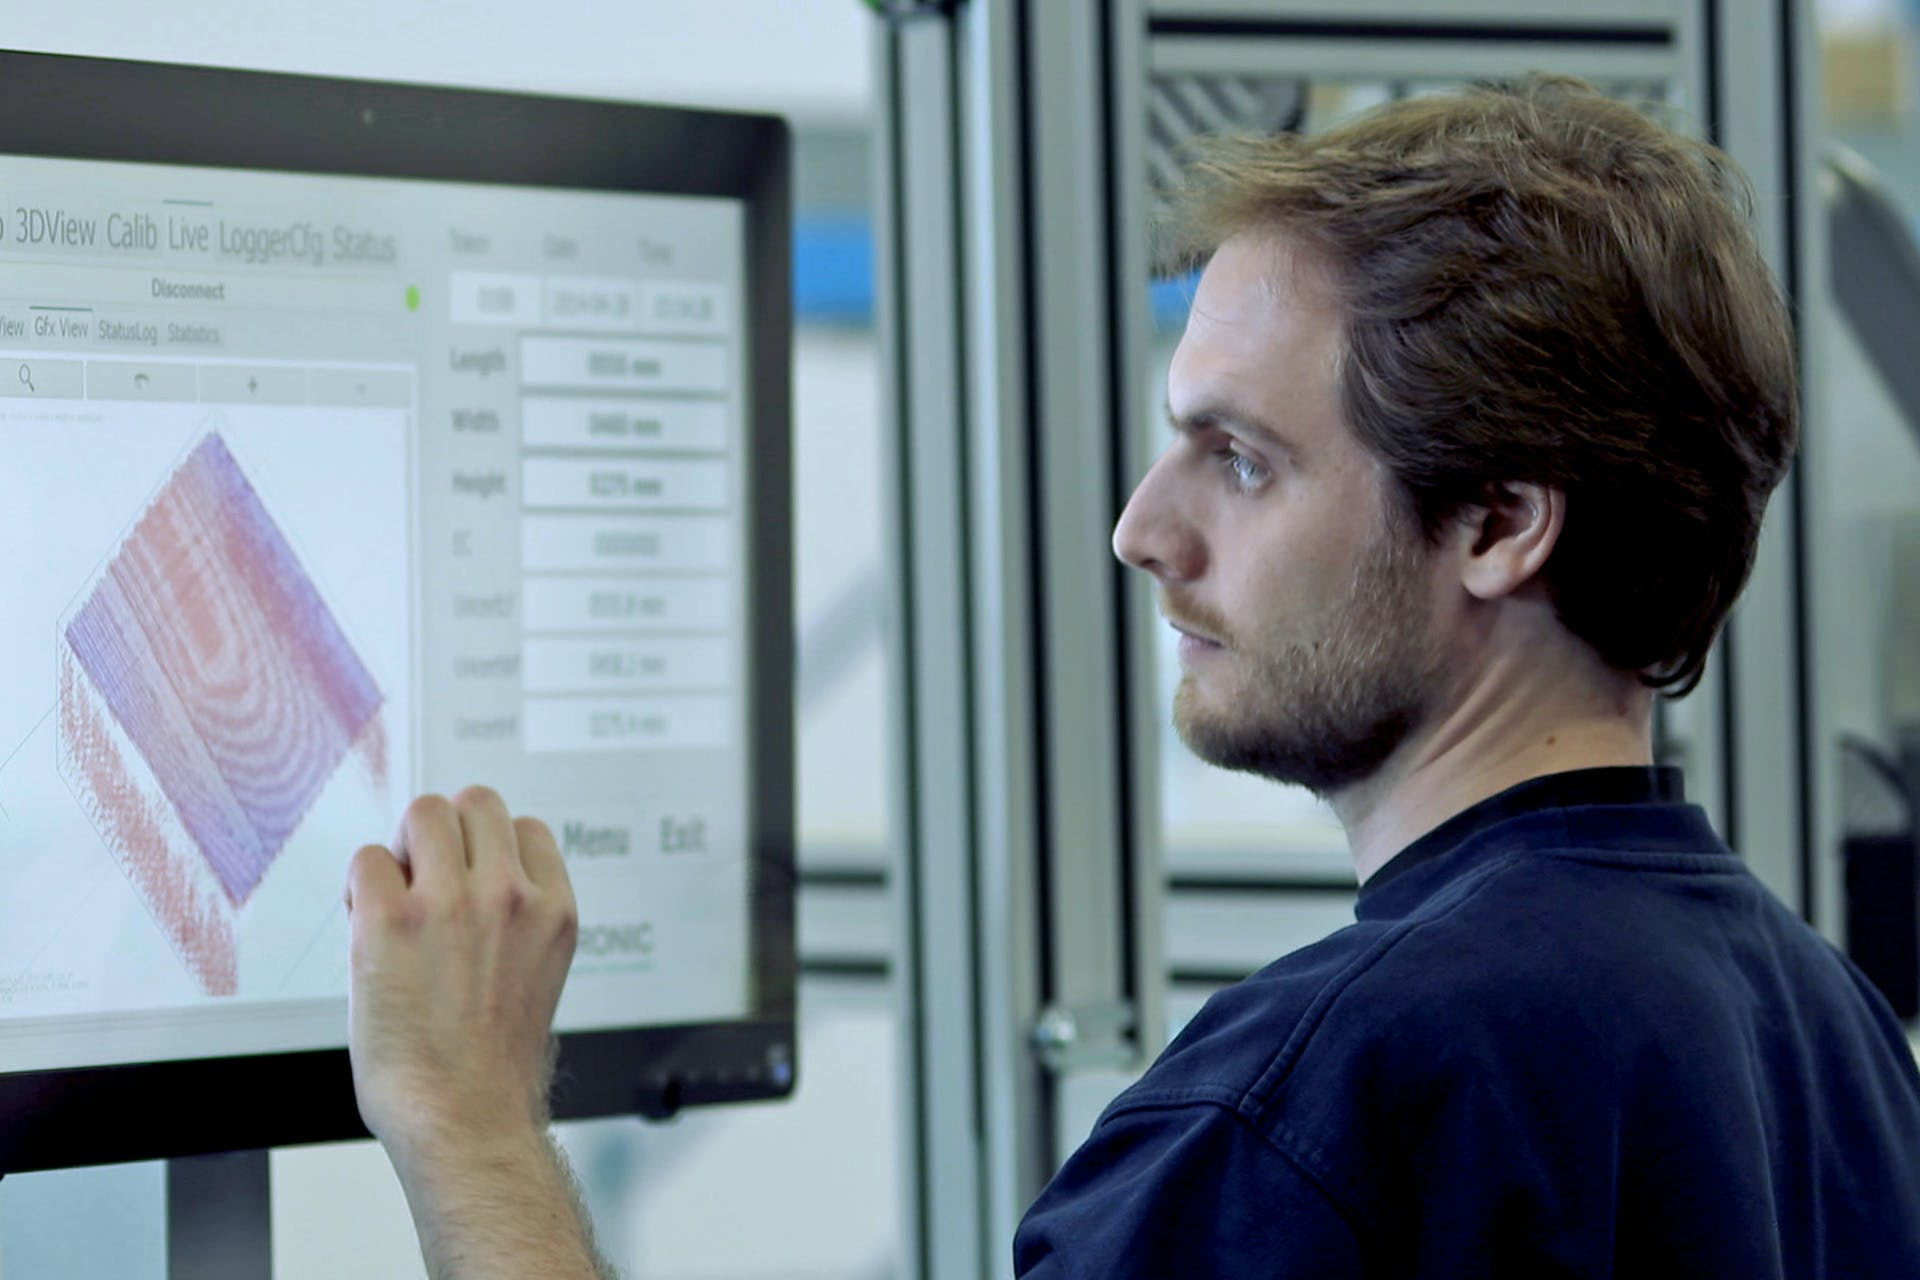 An employee processes shipment data on a screen.